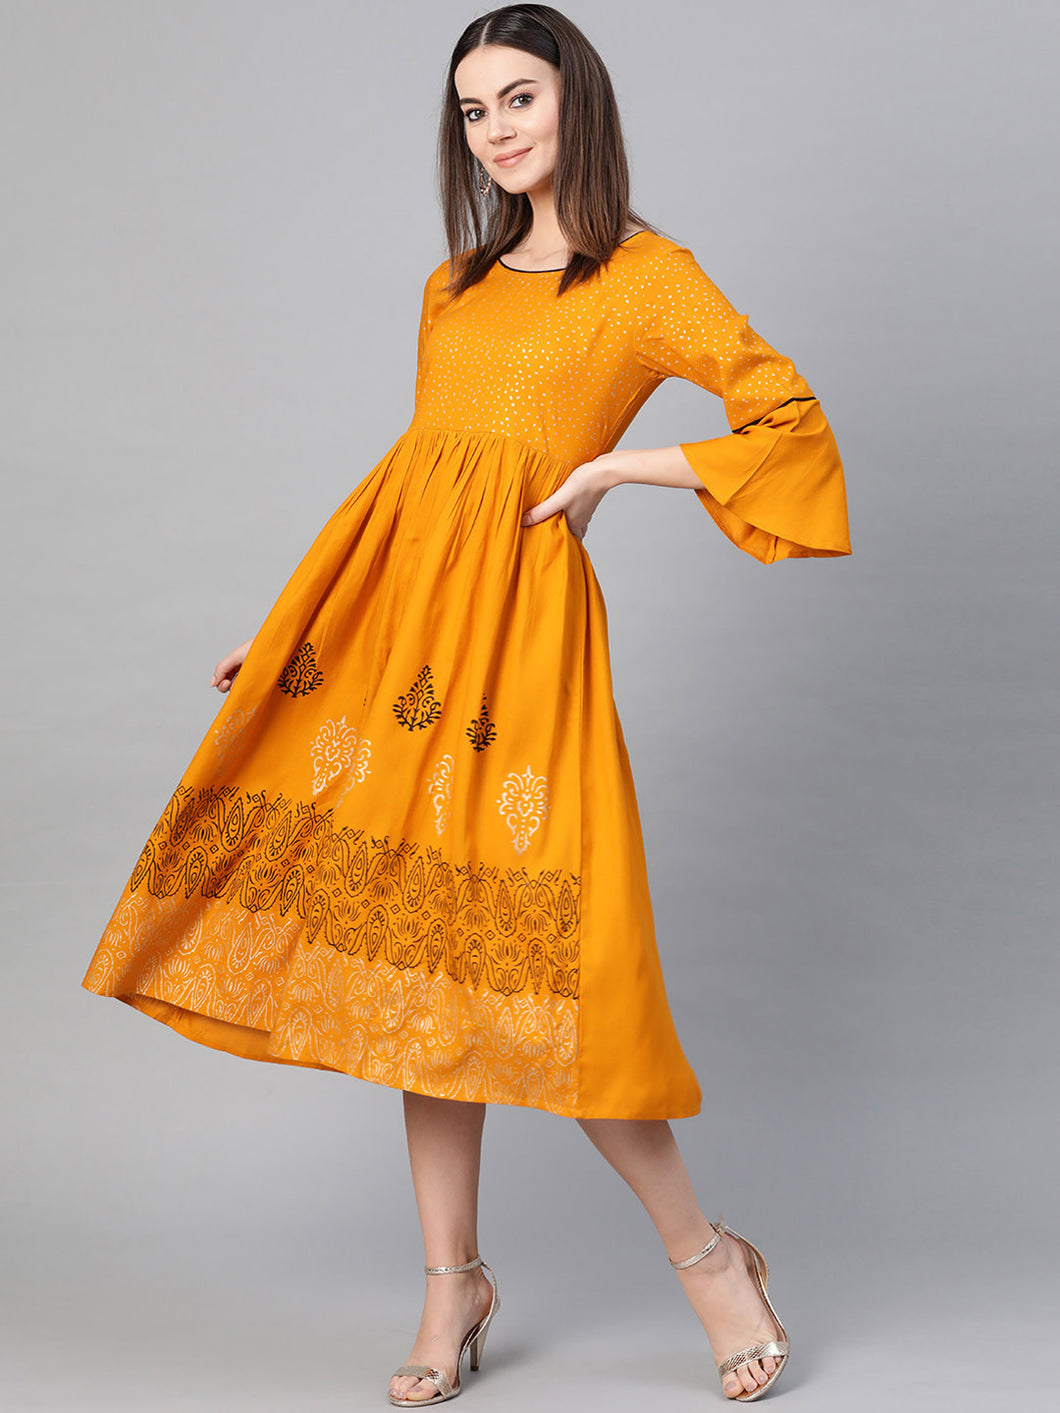 Yellow printed  A-line dress, has a round neck